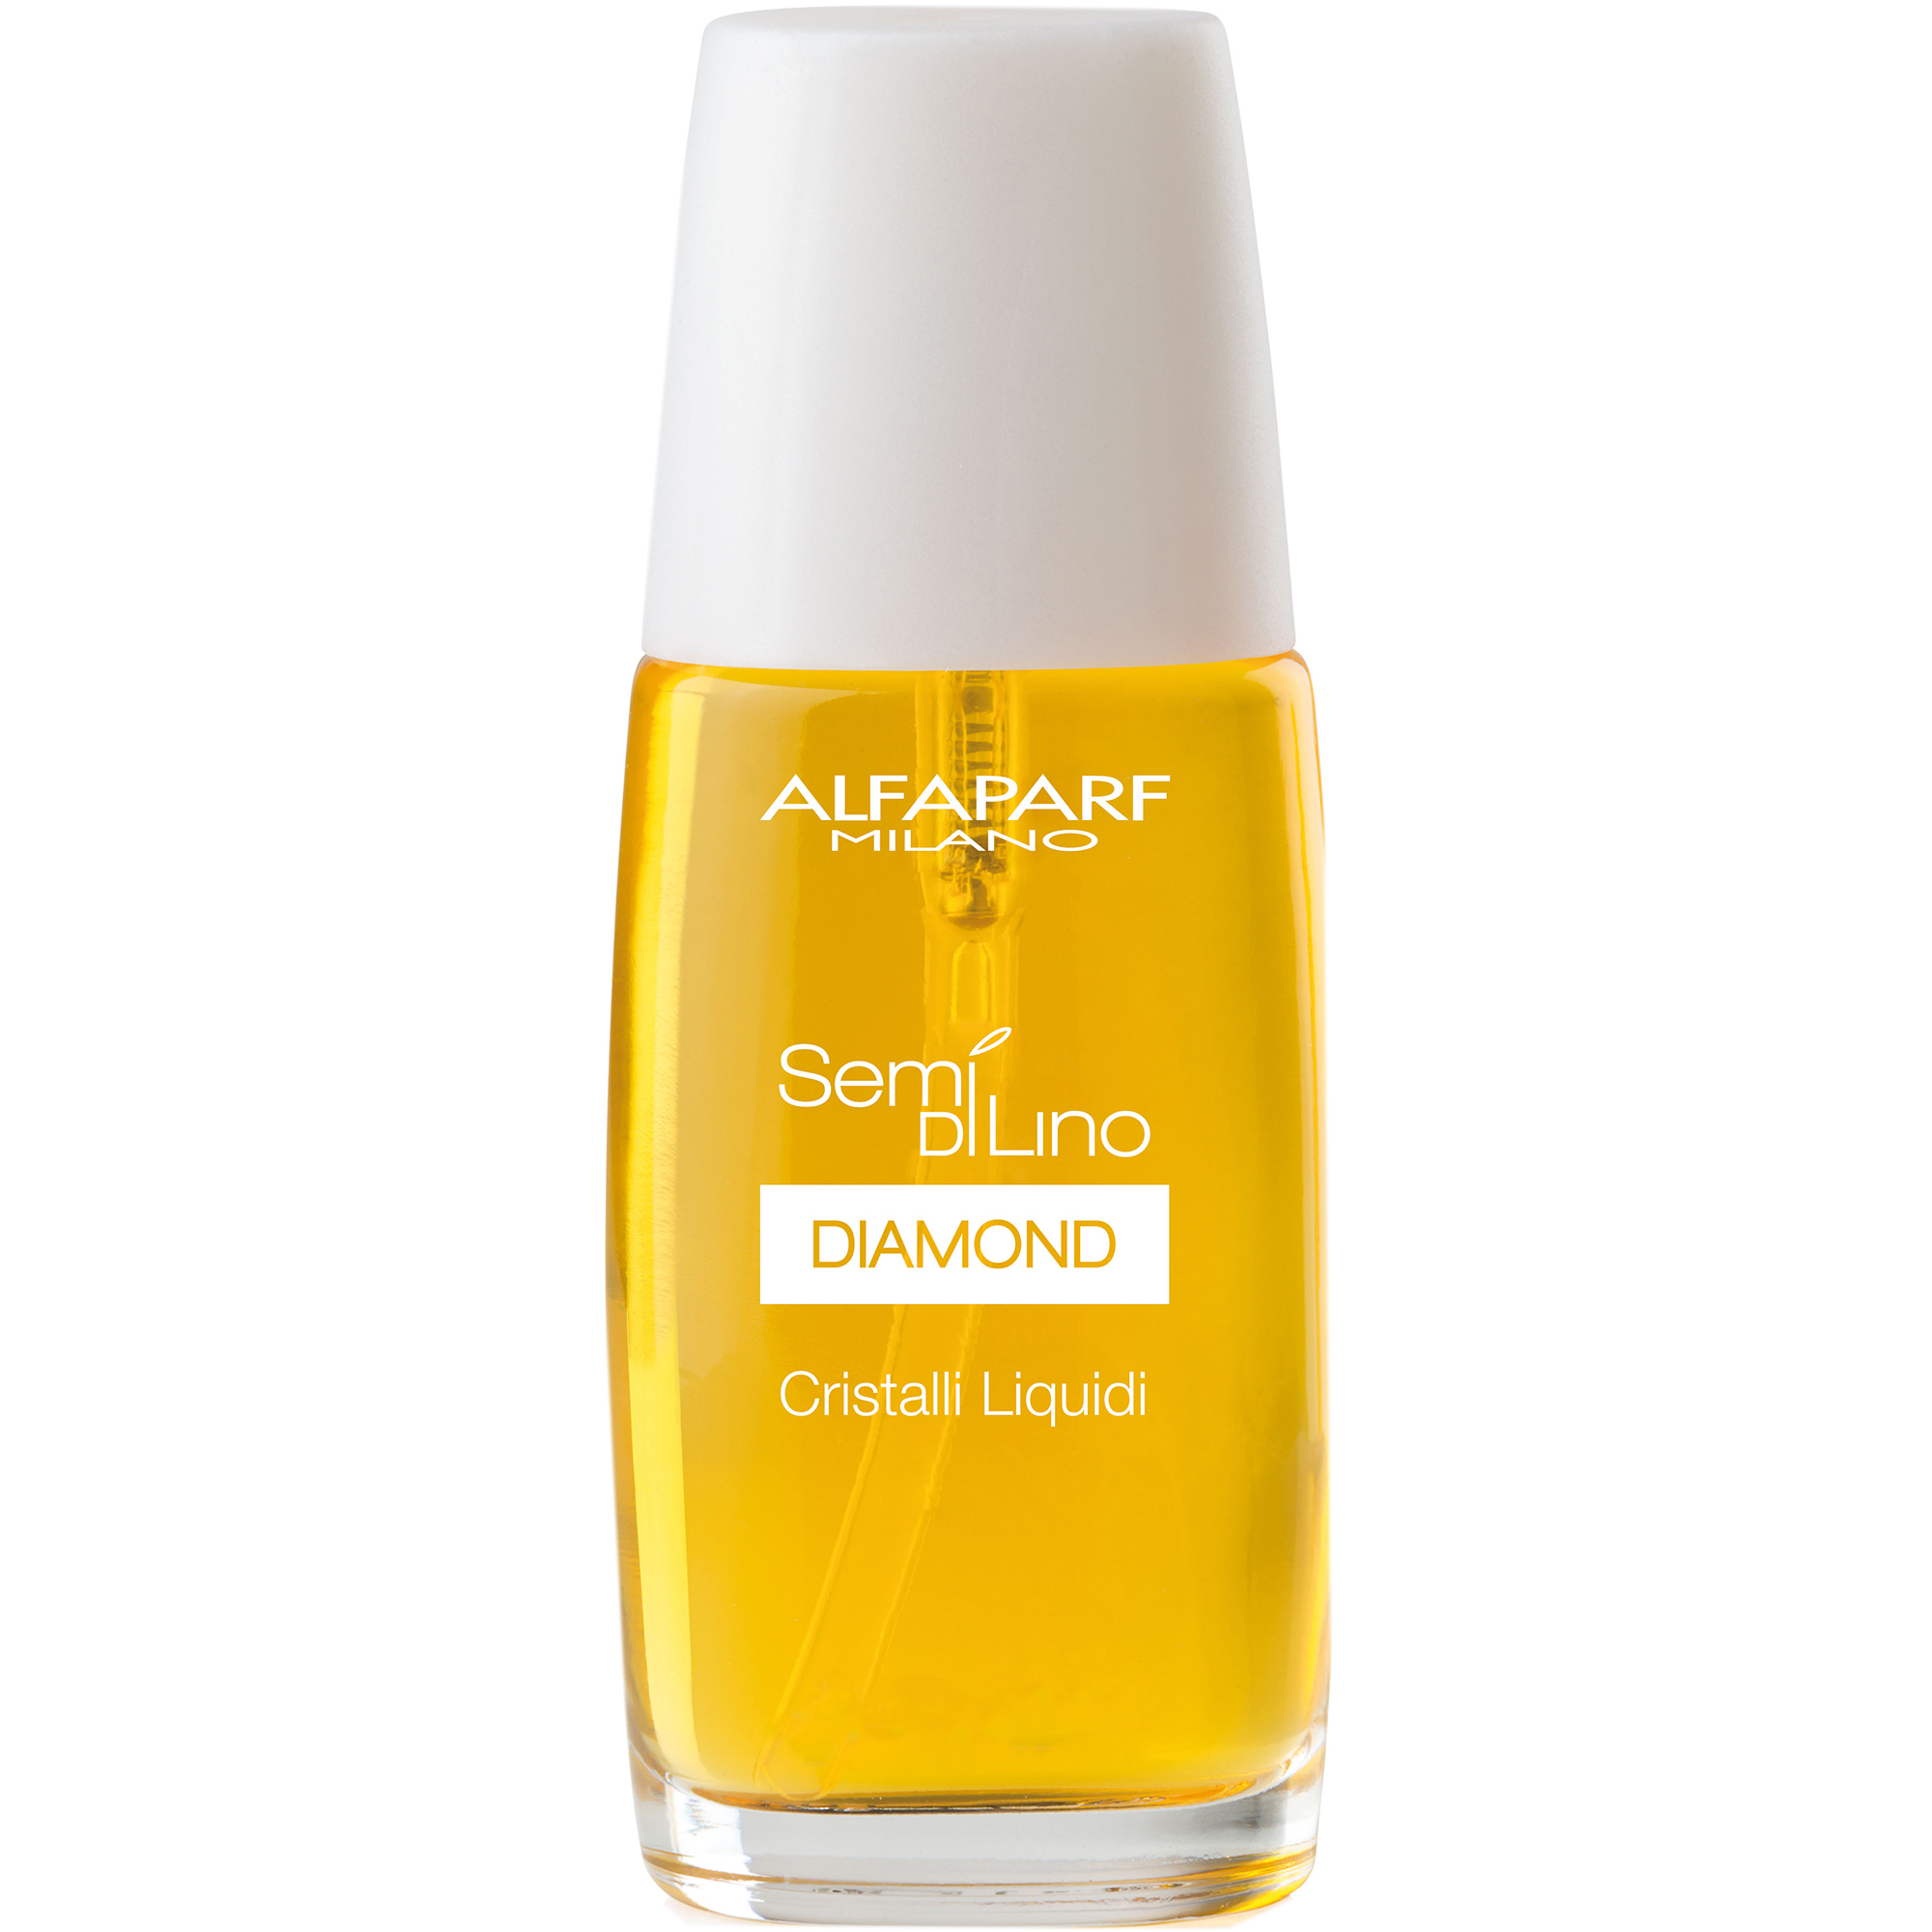 Alfaparf Semi Di Lino Diamond Liquid Crystal 50ml